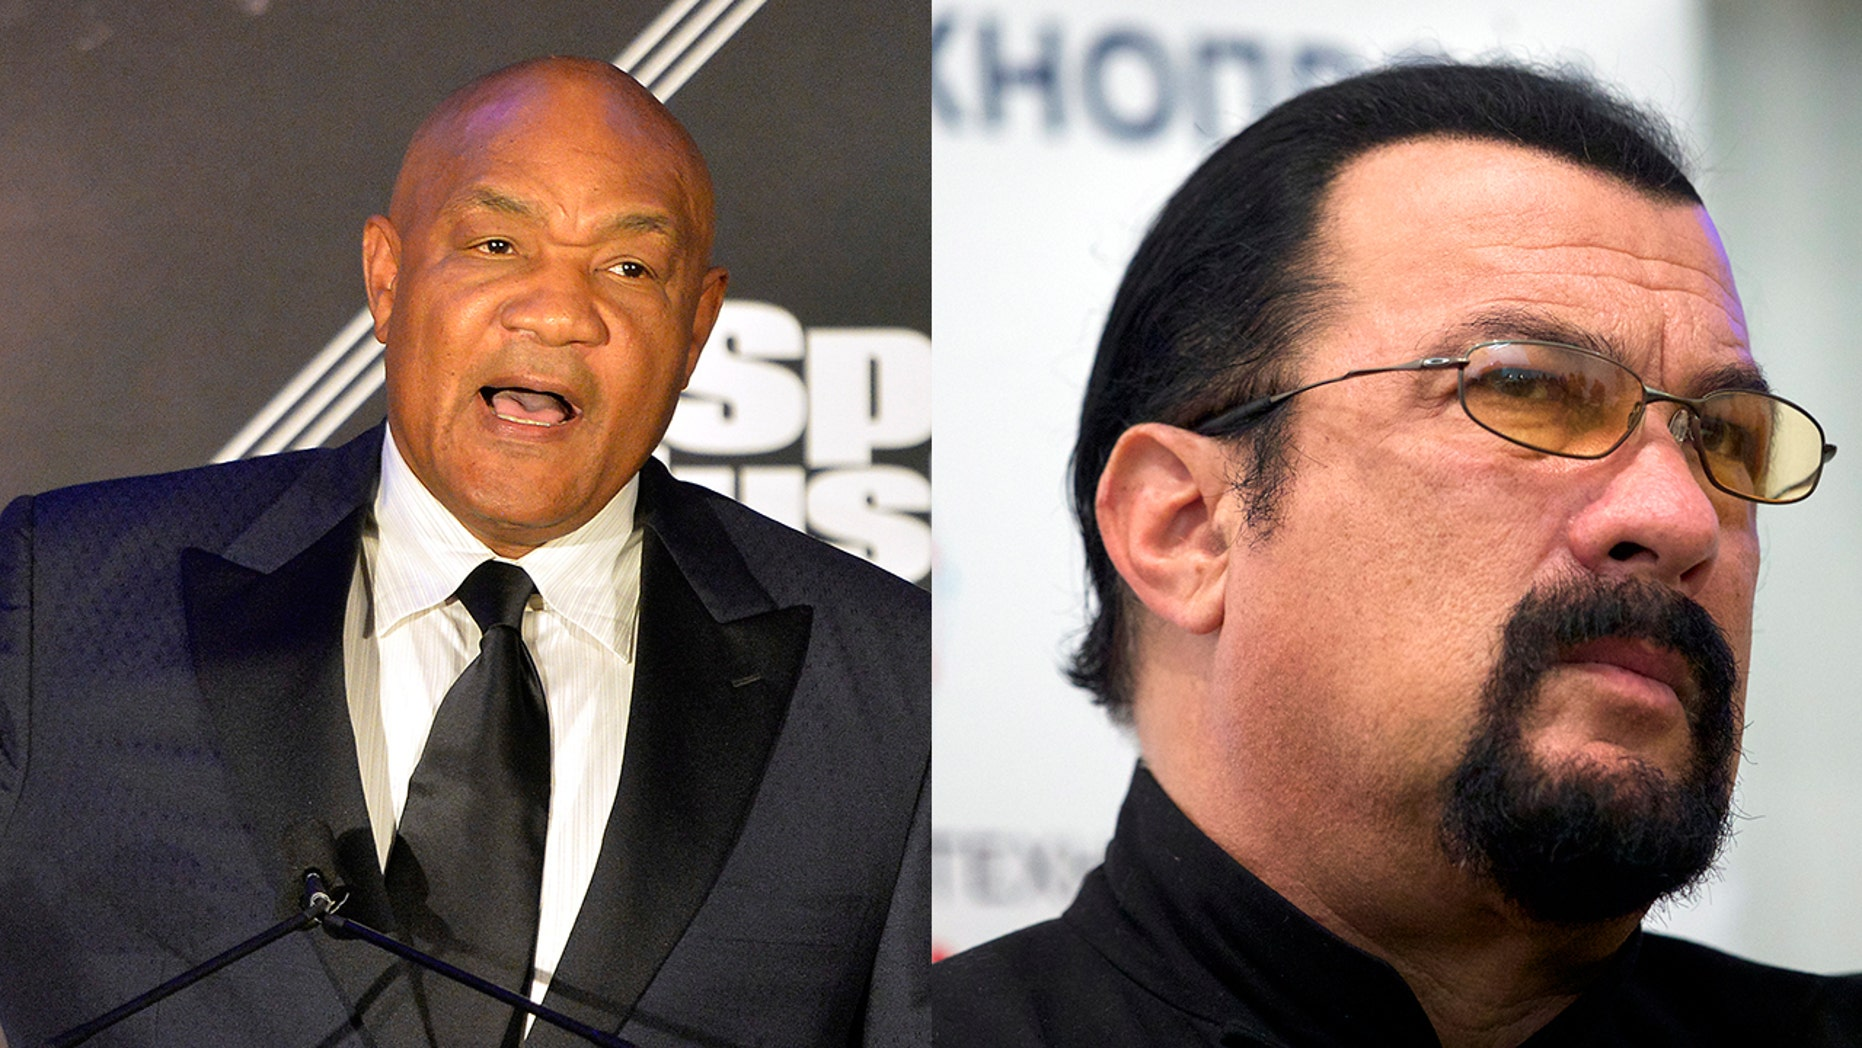 George Foreman, left, challenged Steven Seagal to a fight.